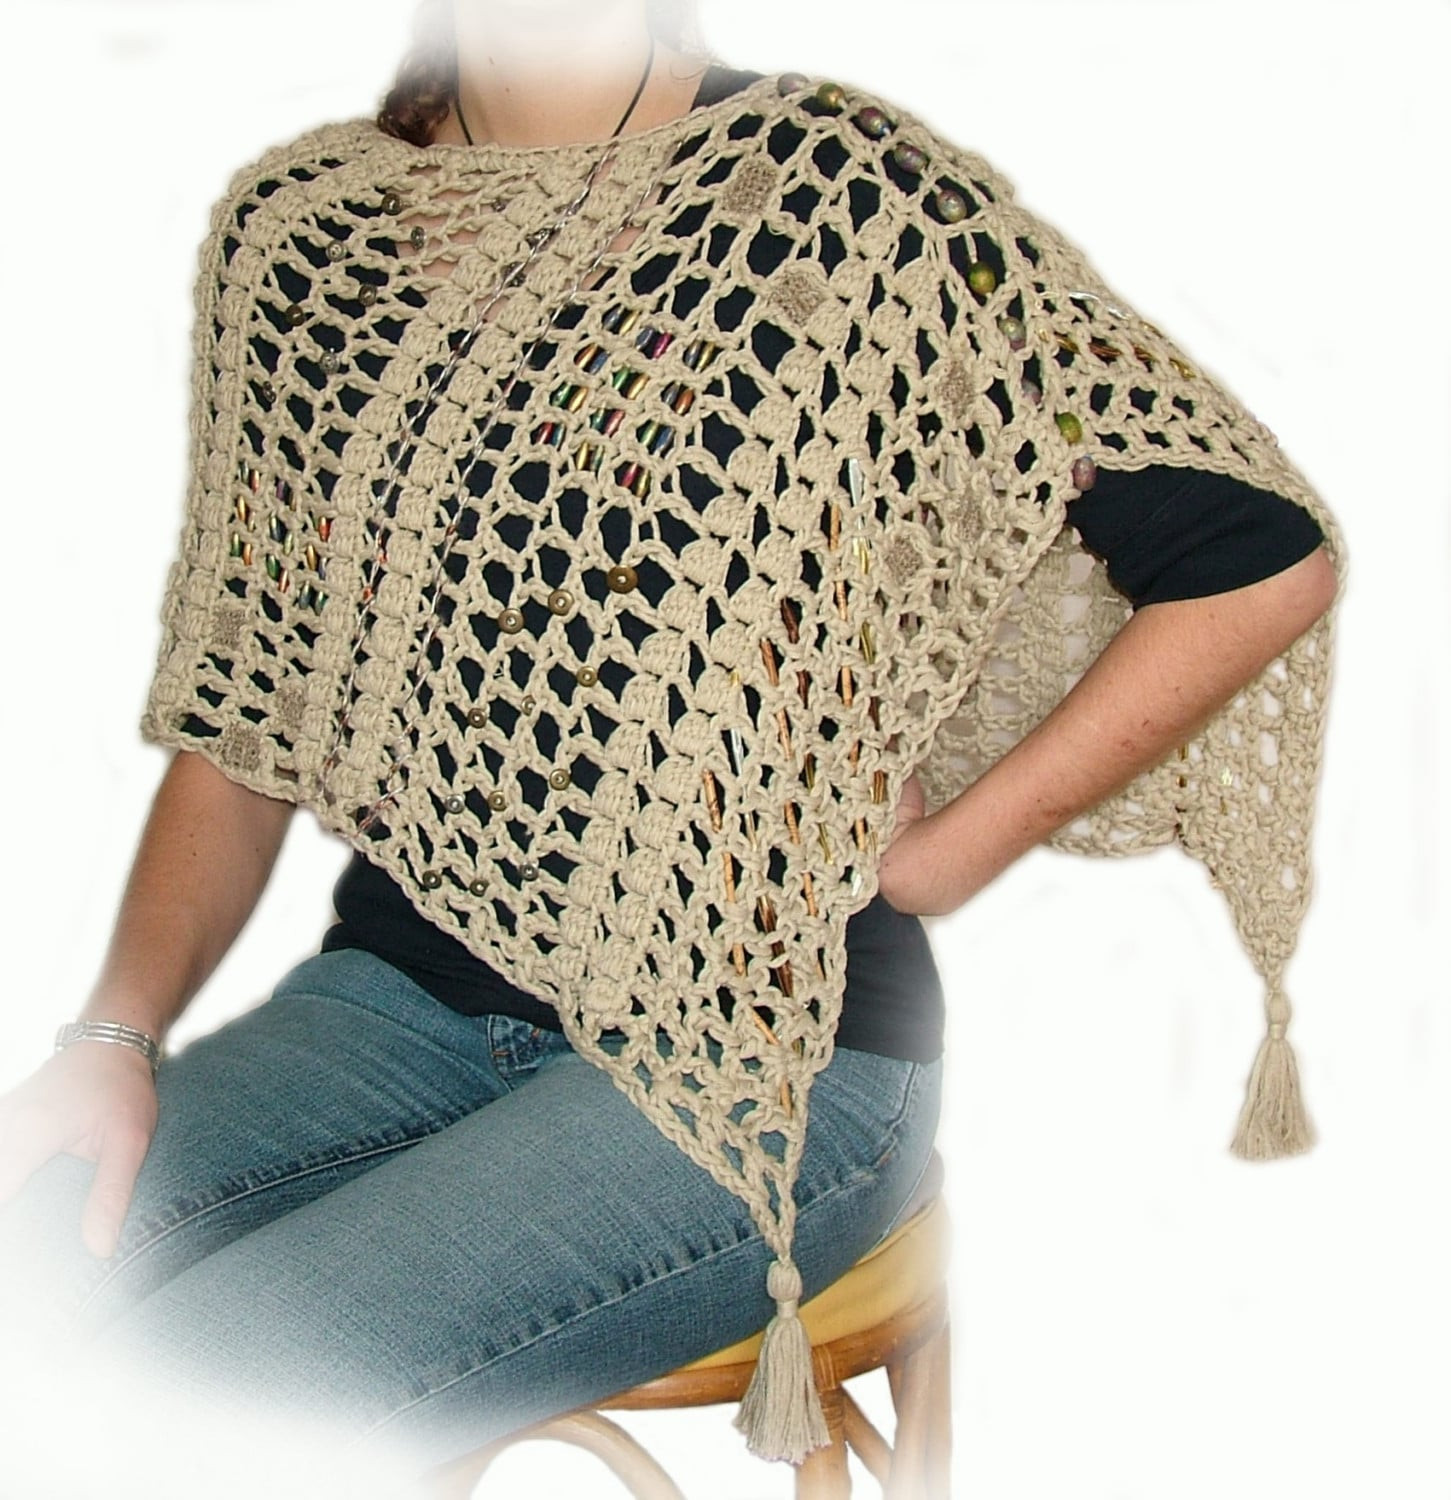 Crochet Poncho Patterns for Beginners Elegant Classy and Chic Crochet Poncho for Winters Of Amazing 43 Models Crochet Poncho Patterns for Beginners